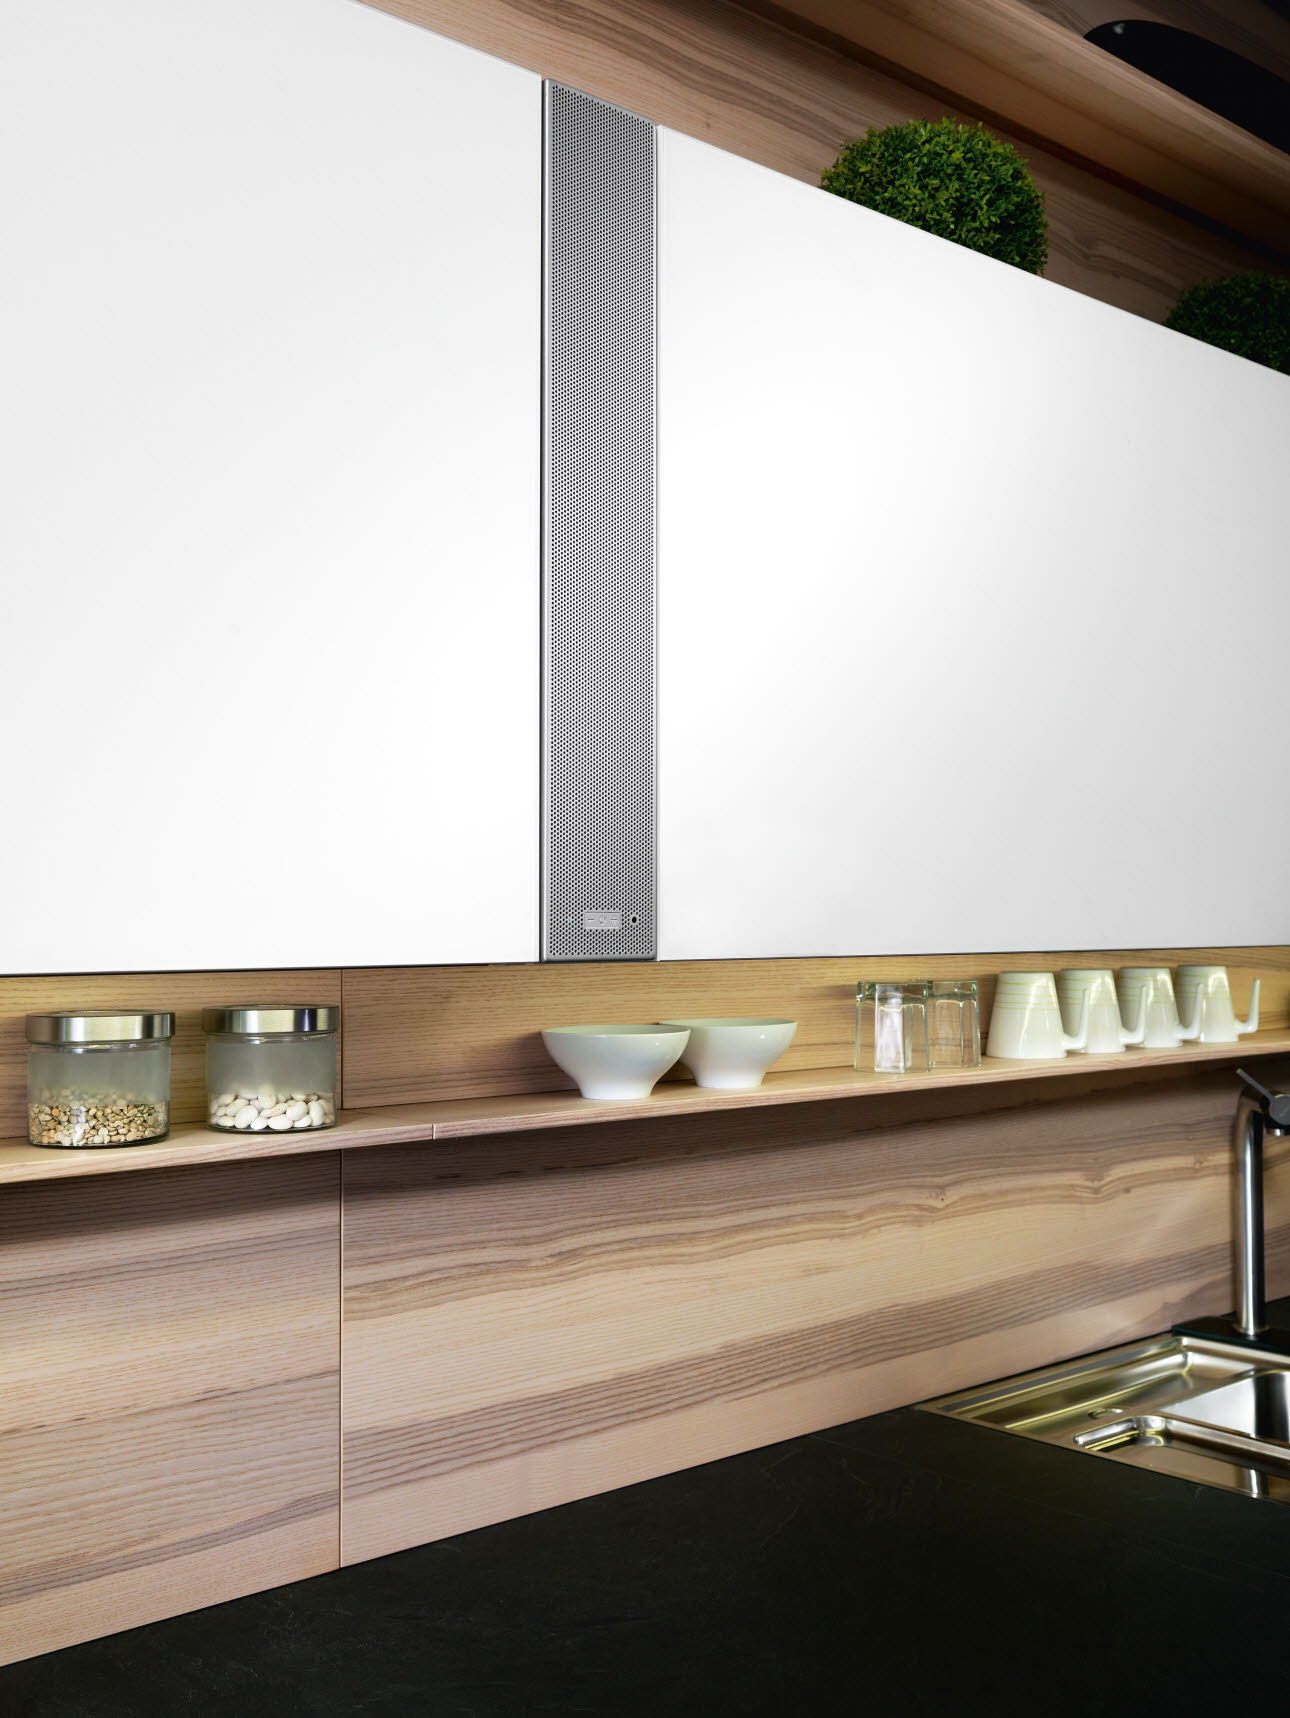 ewe kitchen vida 09 - soundmodul